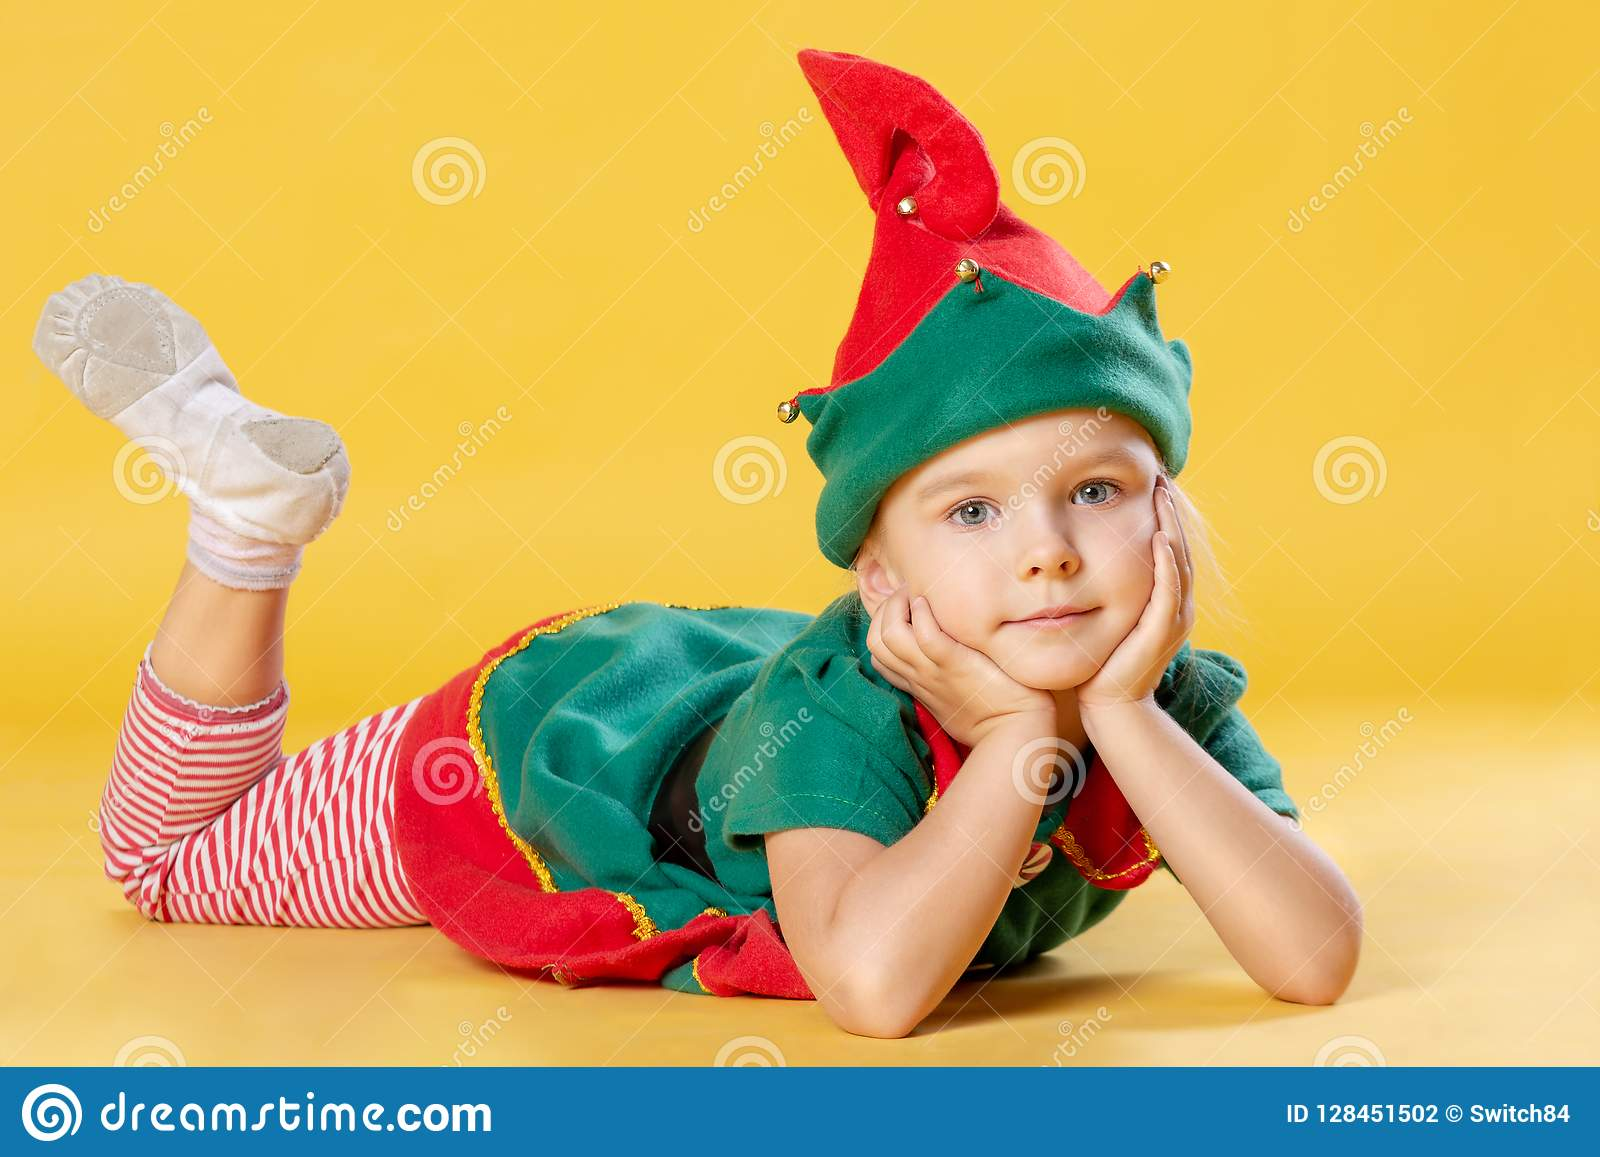 Little Girl With Blond Hair In A Christmas Elf Costume The Baby Is Lying On His Stomach Stock Photo Image Of Blonde Gnome 128451502